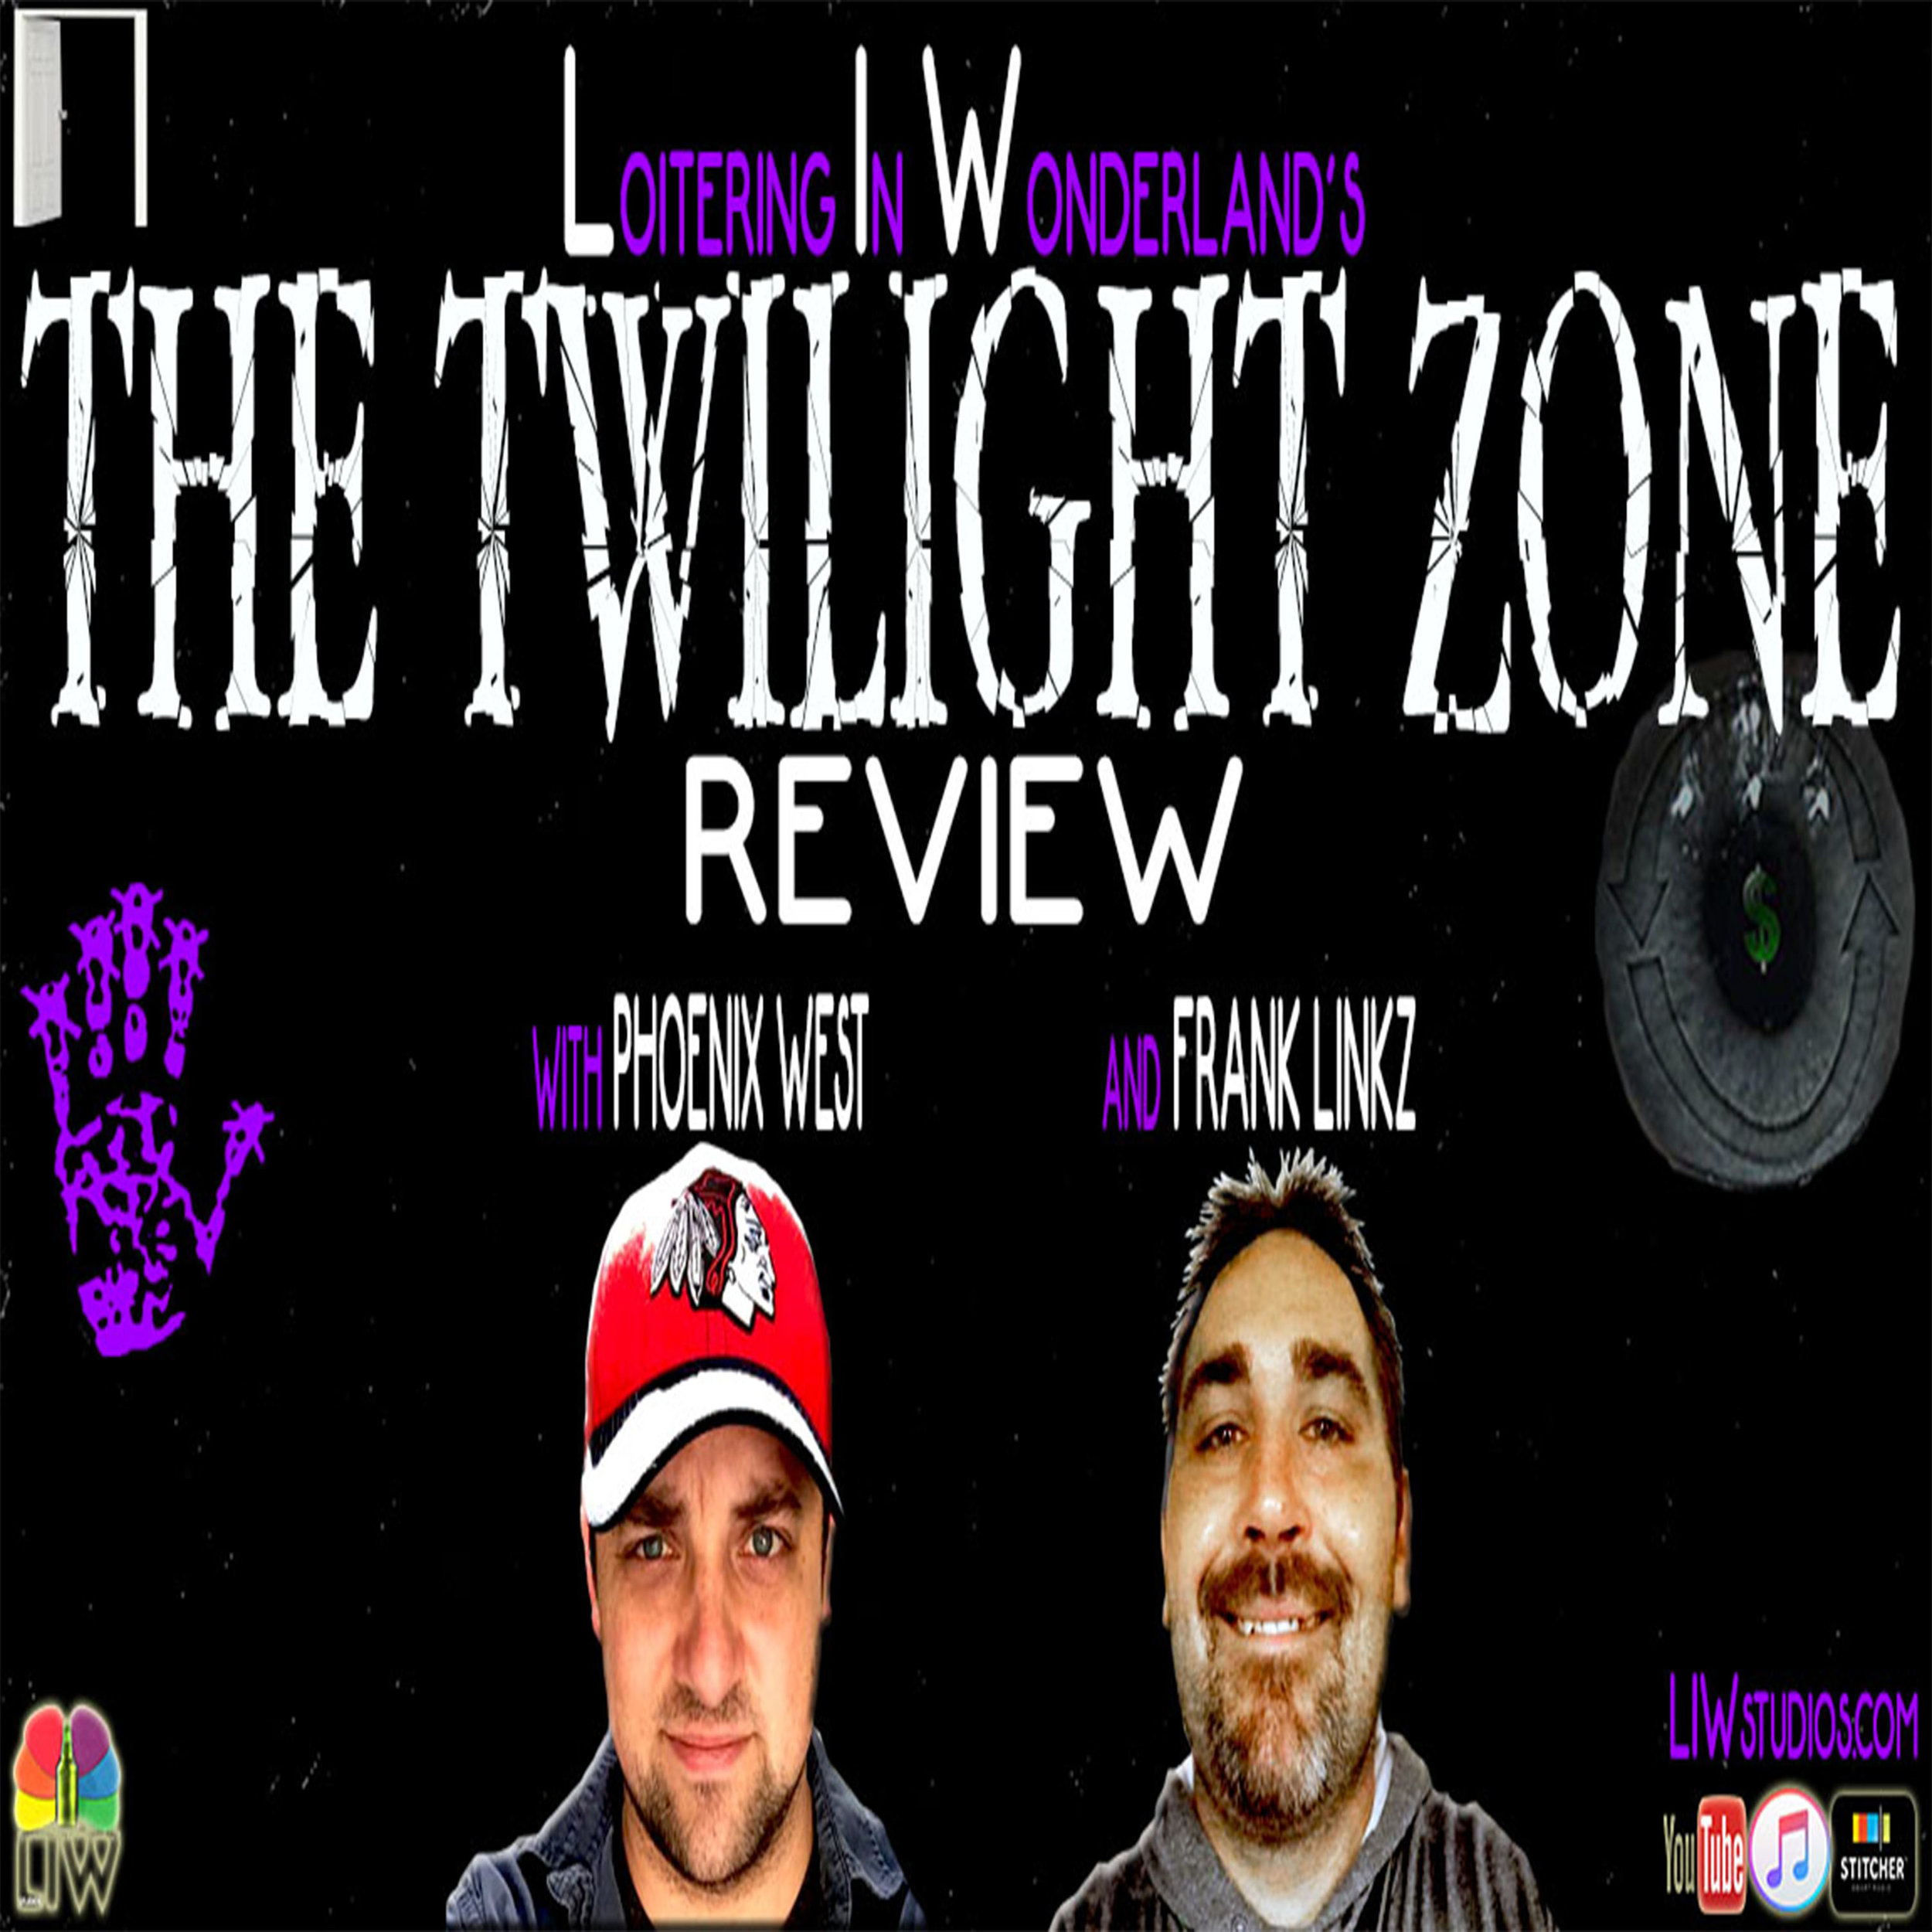 4. LIW The Twilight Zone Review with Frank 3000x3000.jpg